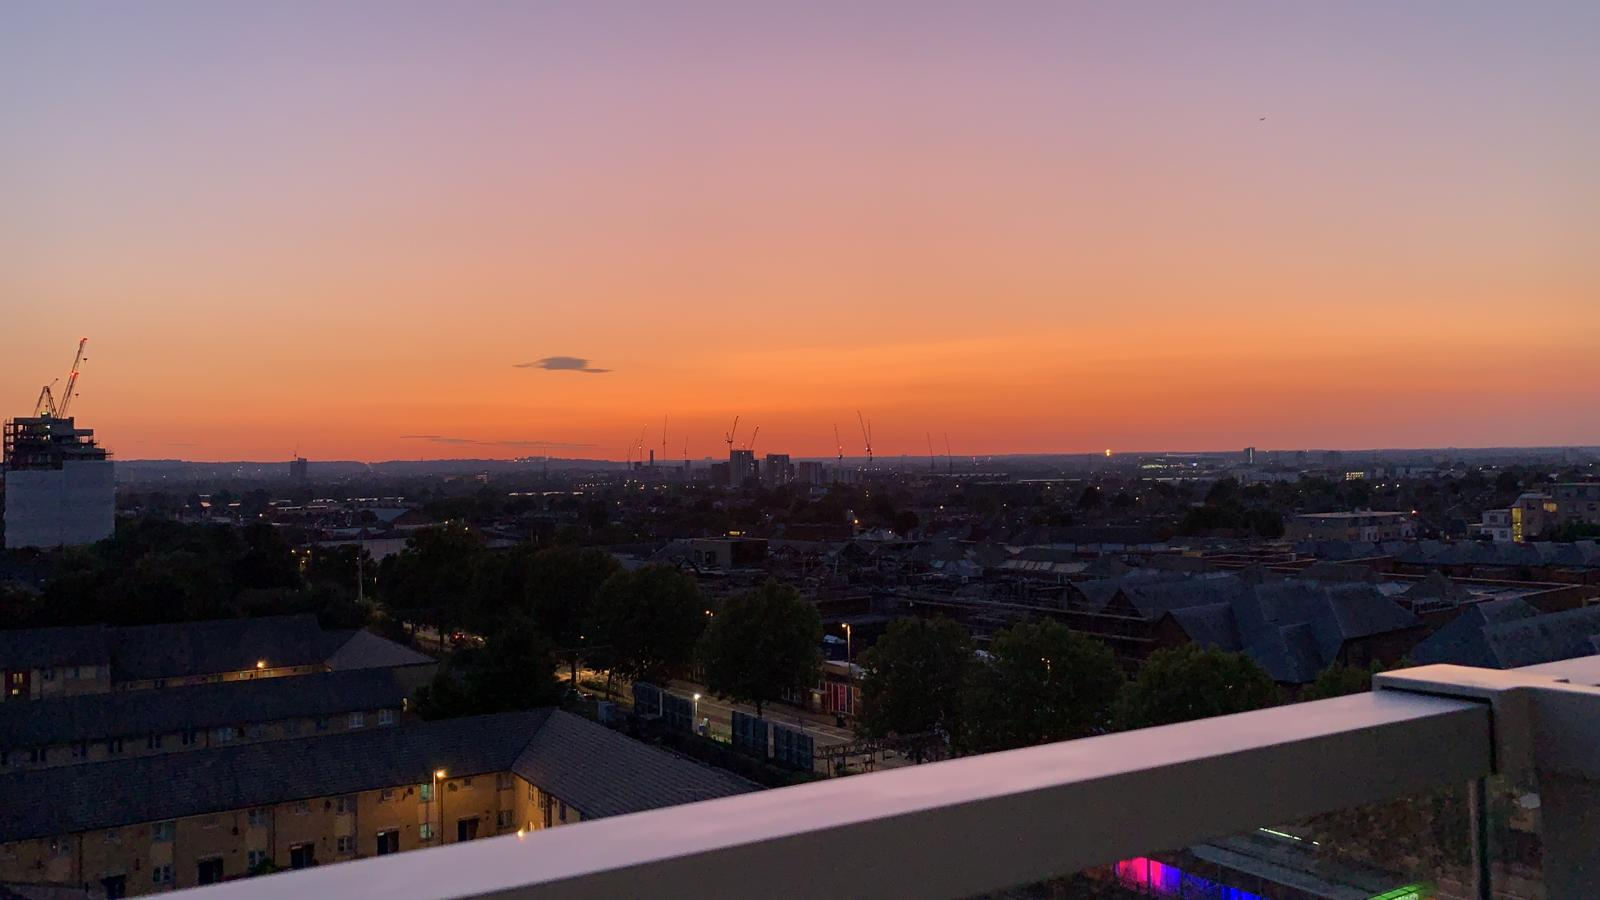 Sunset Over Walthamstow